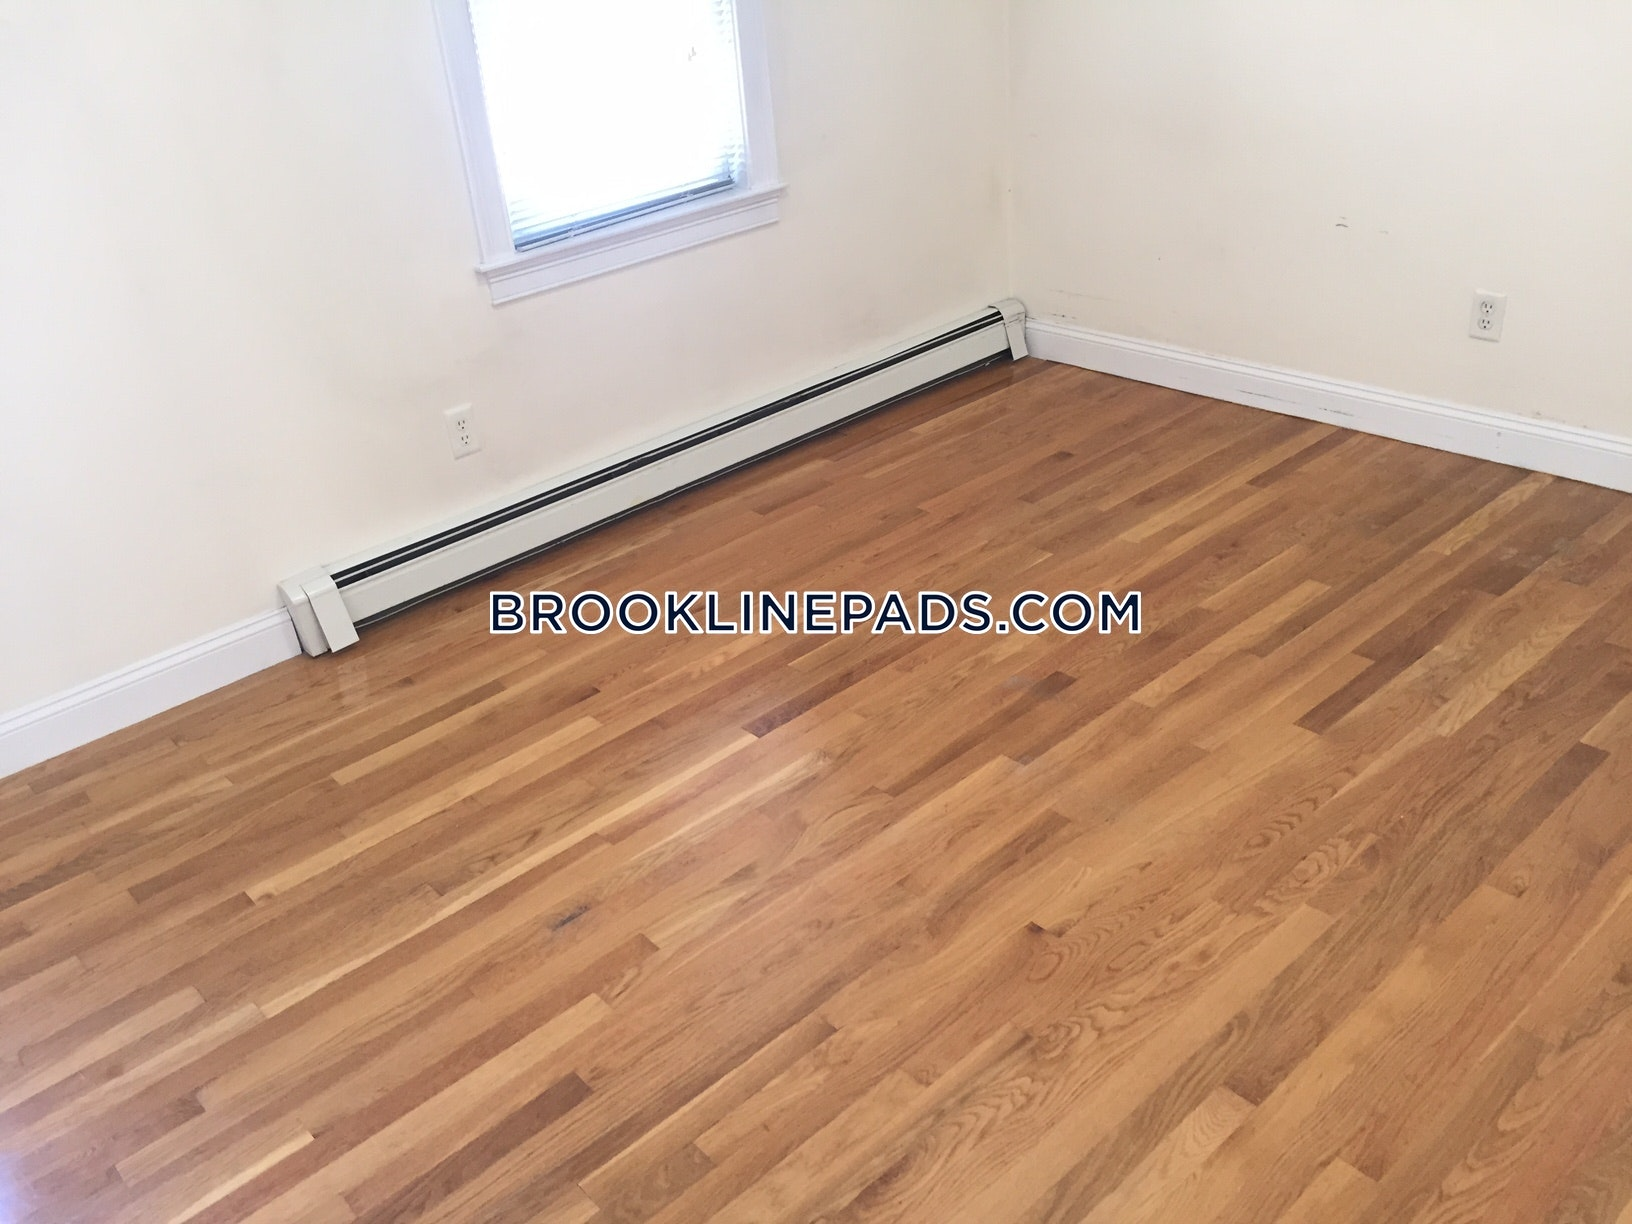 Waiting for you to move in... - Brookline - Brookline Hills $2,900